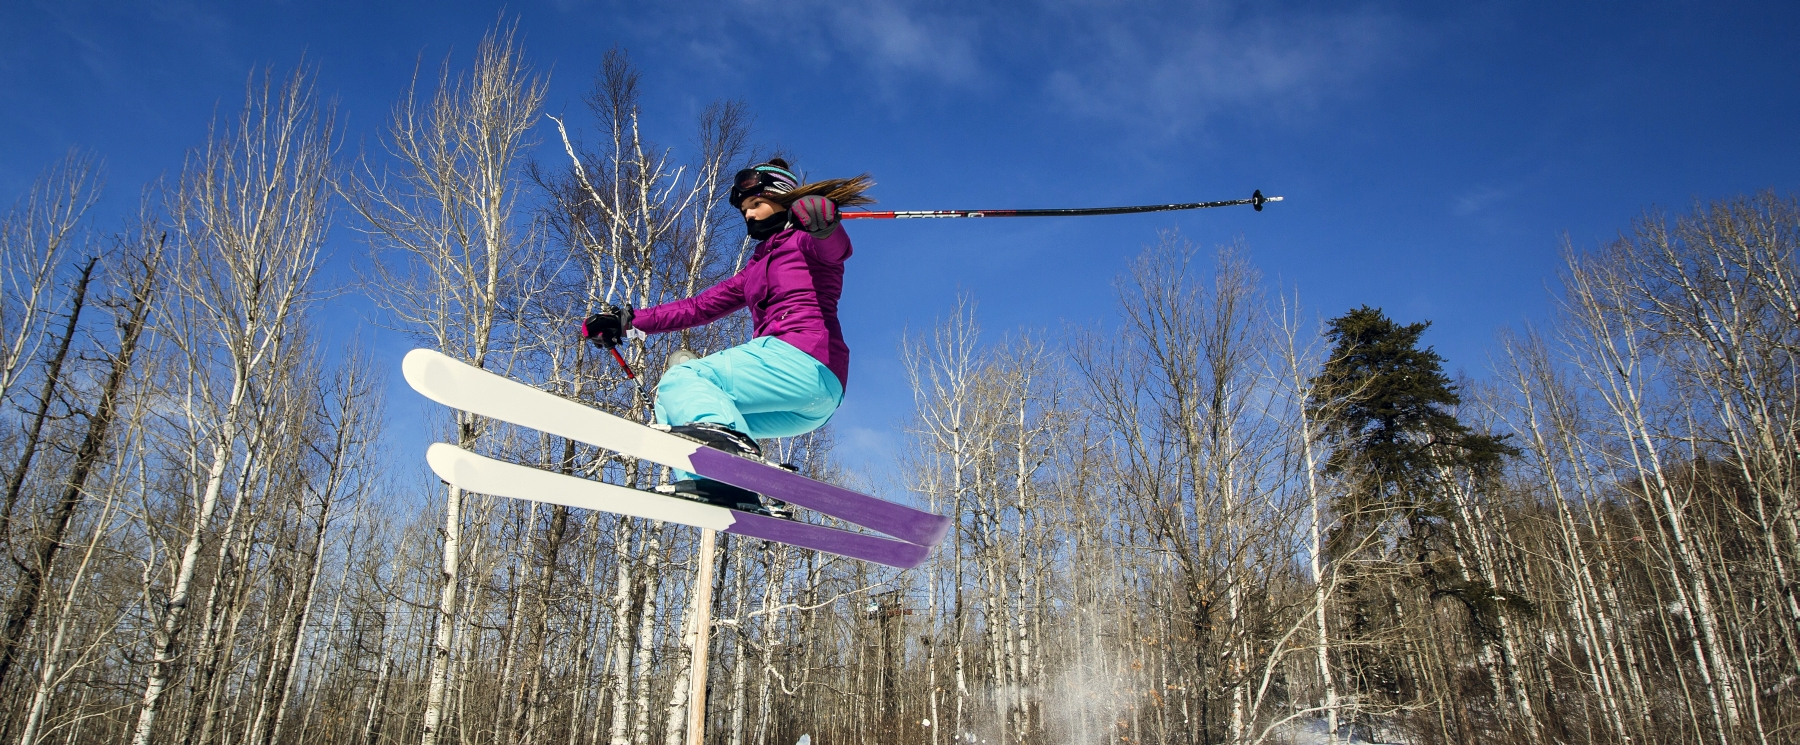 female skiing